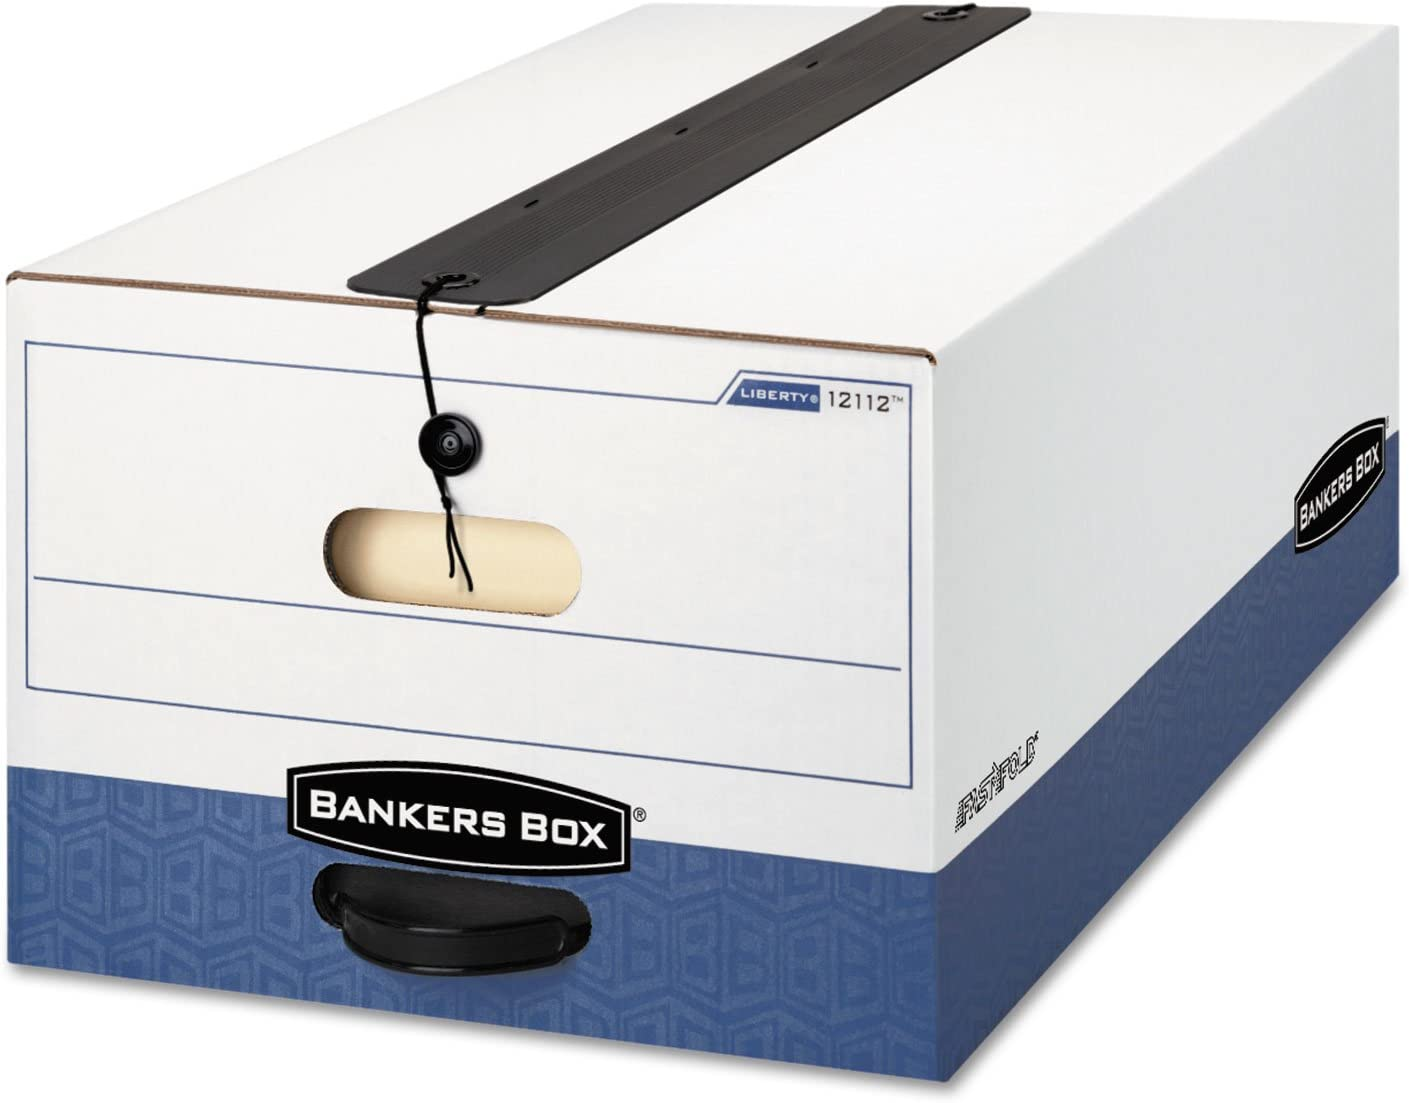 Pack of 10 Bankers Box 703 Letter Legal 10x12x15 Basic-Duty Storage /& File Boxes w// Lift-Off Lids